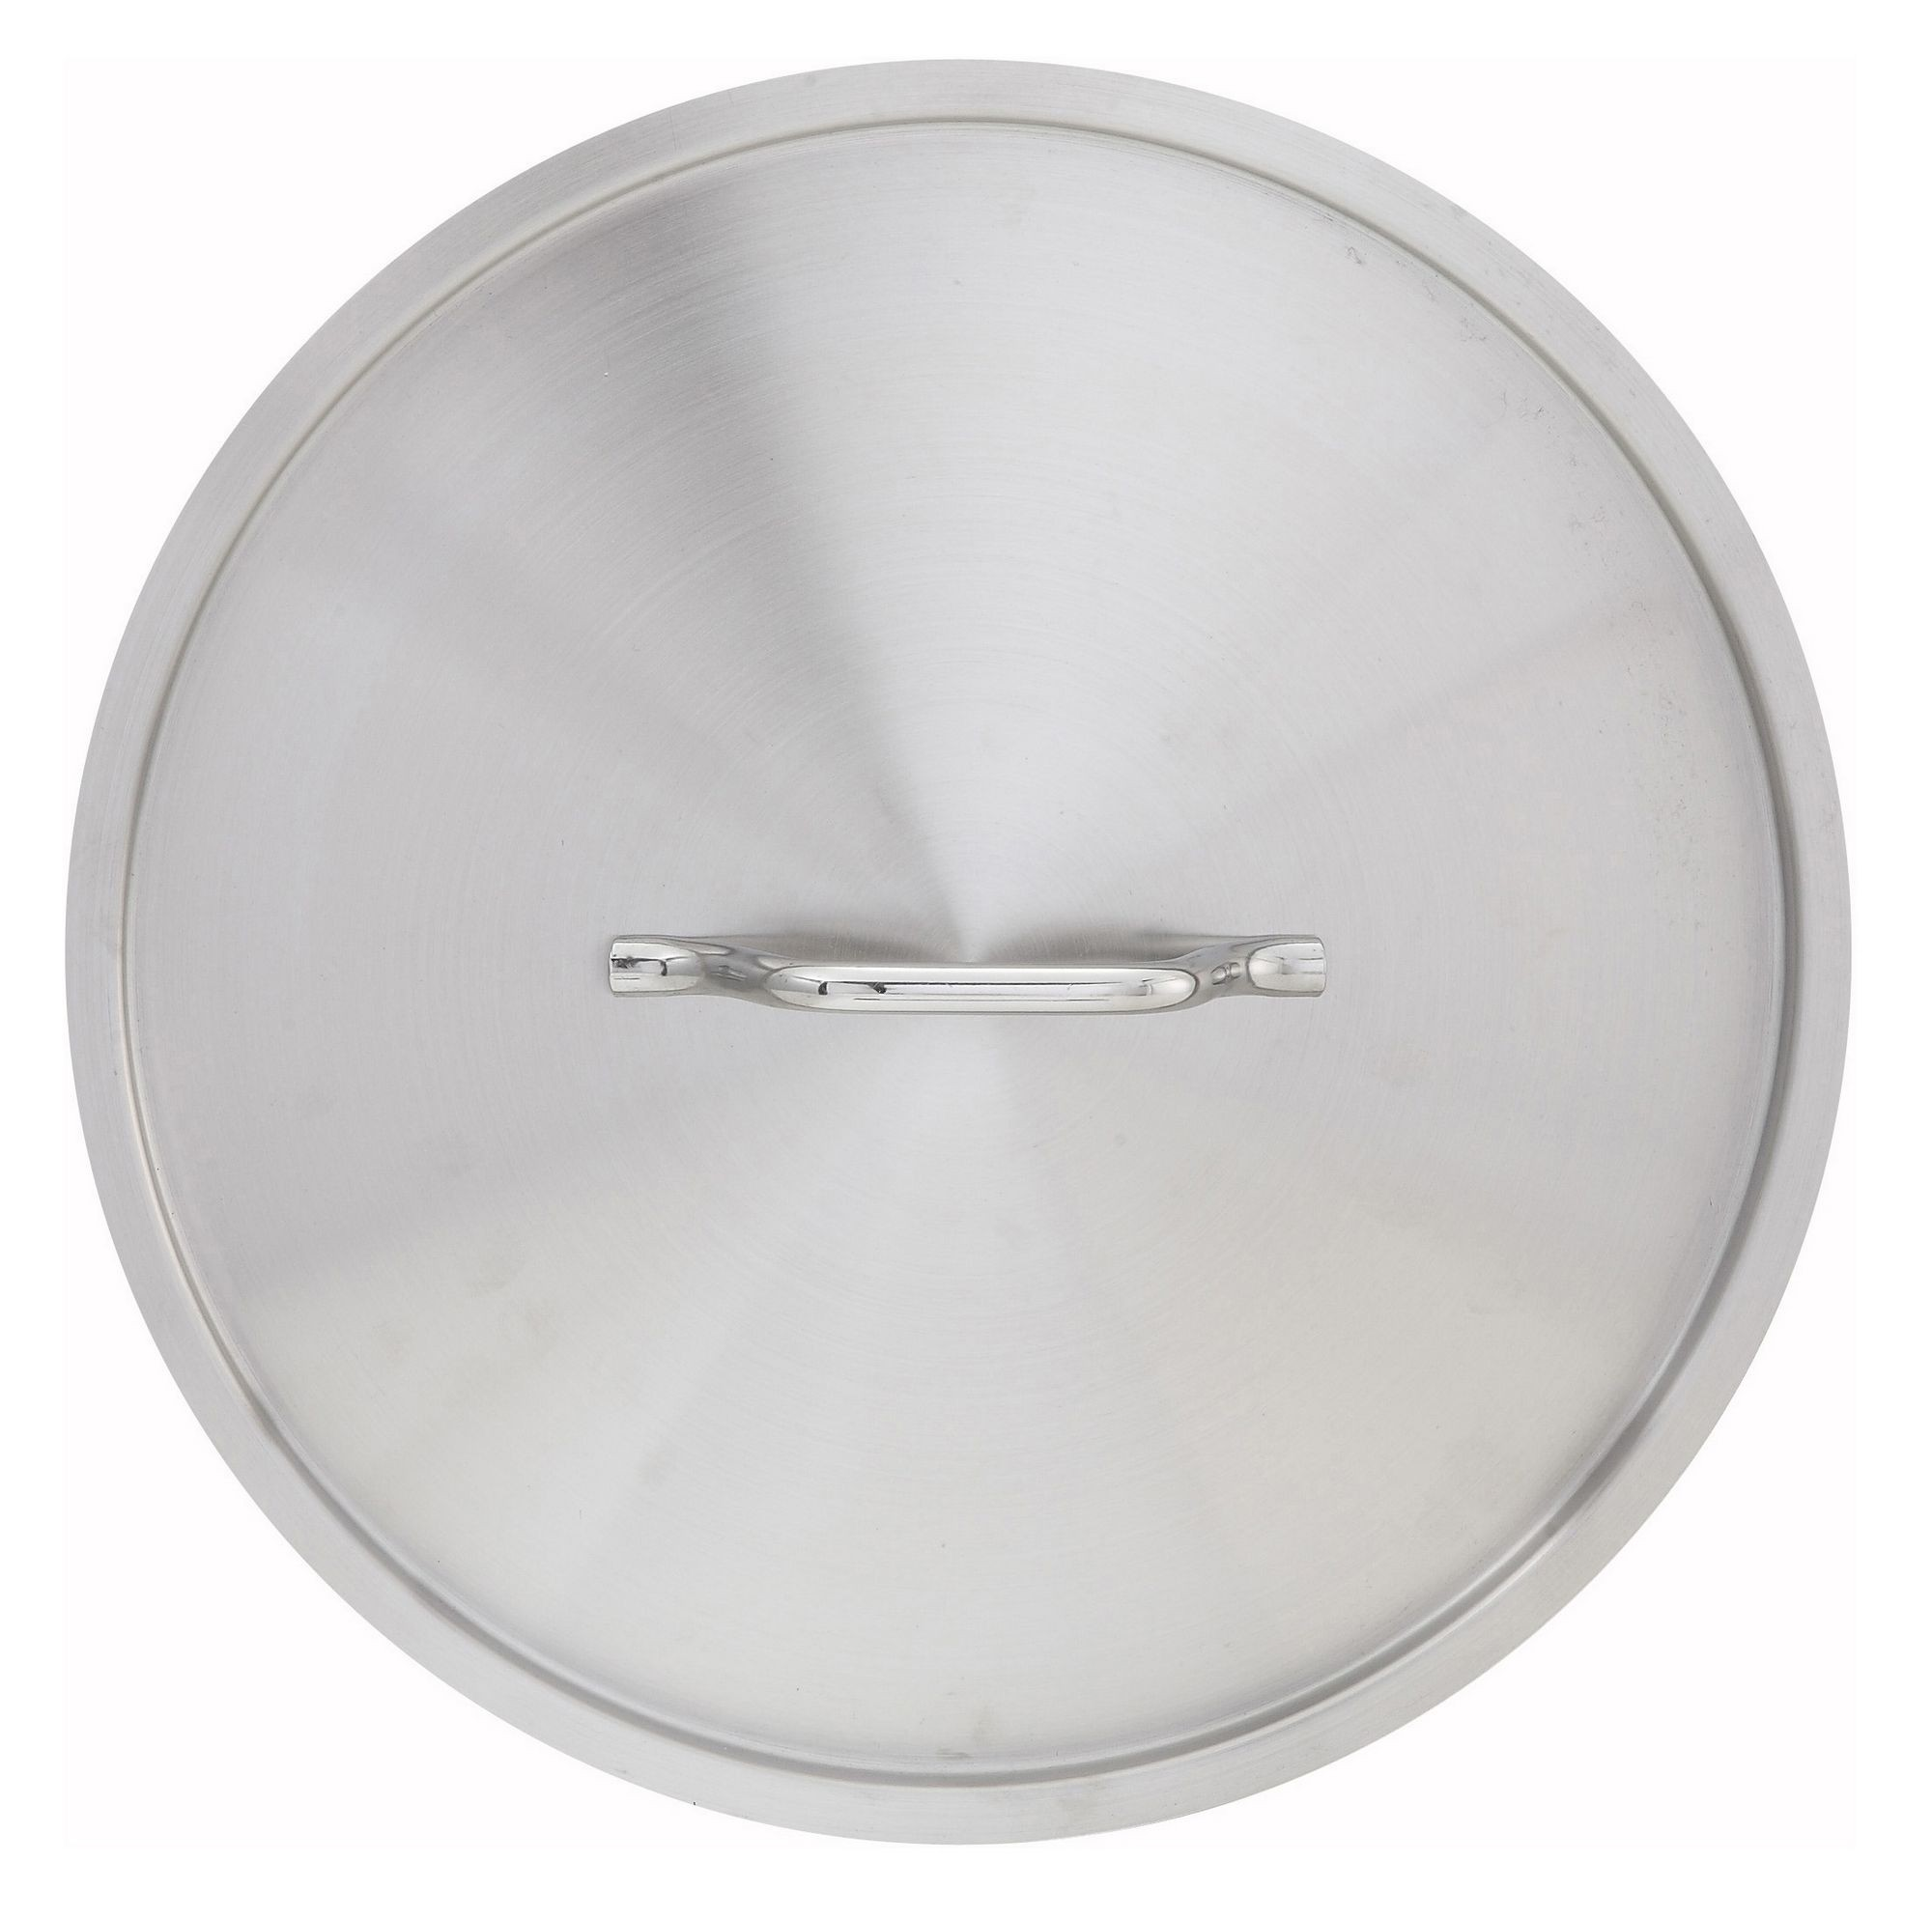 Winco SSTC-24 Stainless Steel Cover for 24 Qt. Stock Pot SST-24